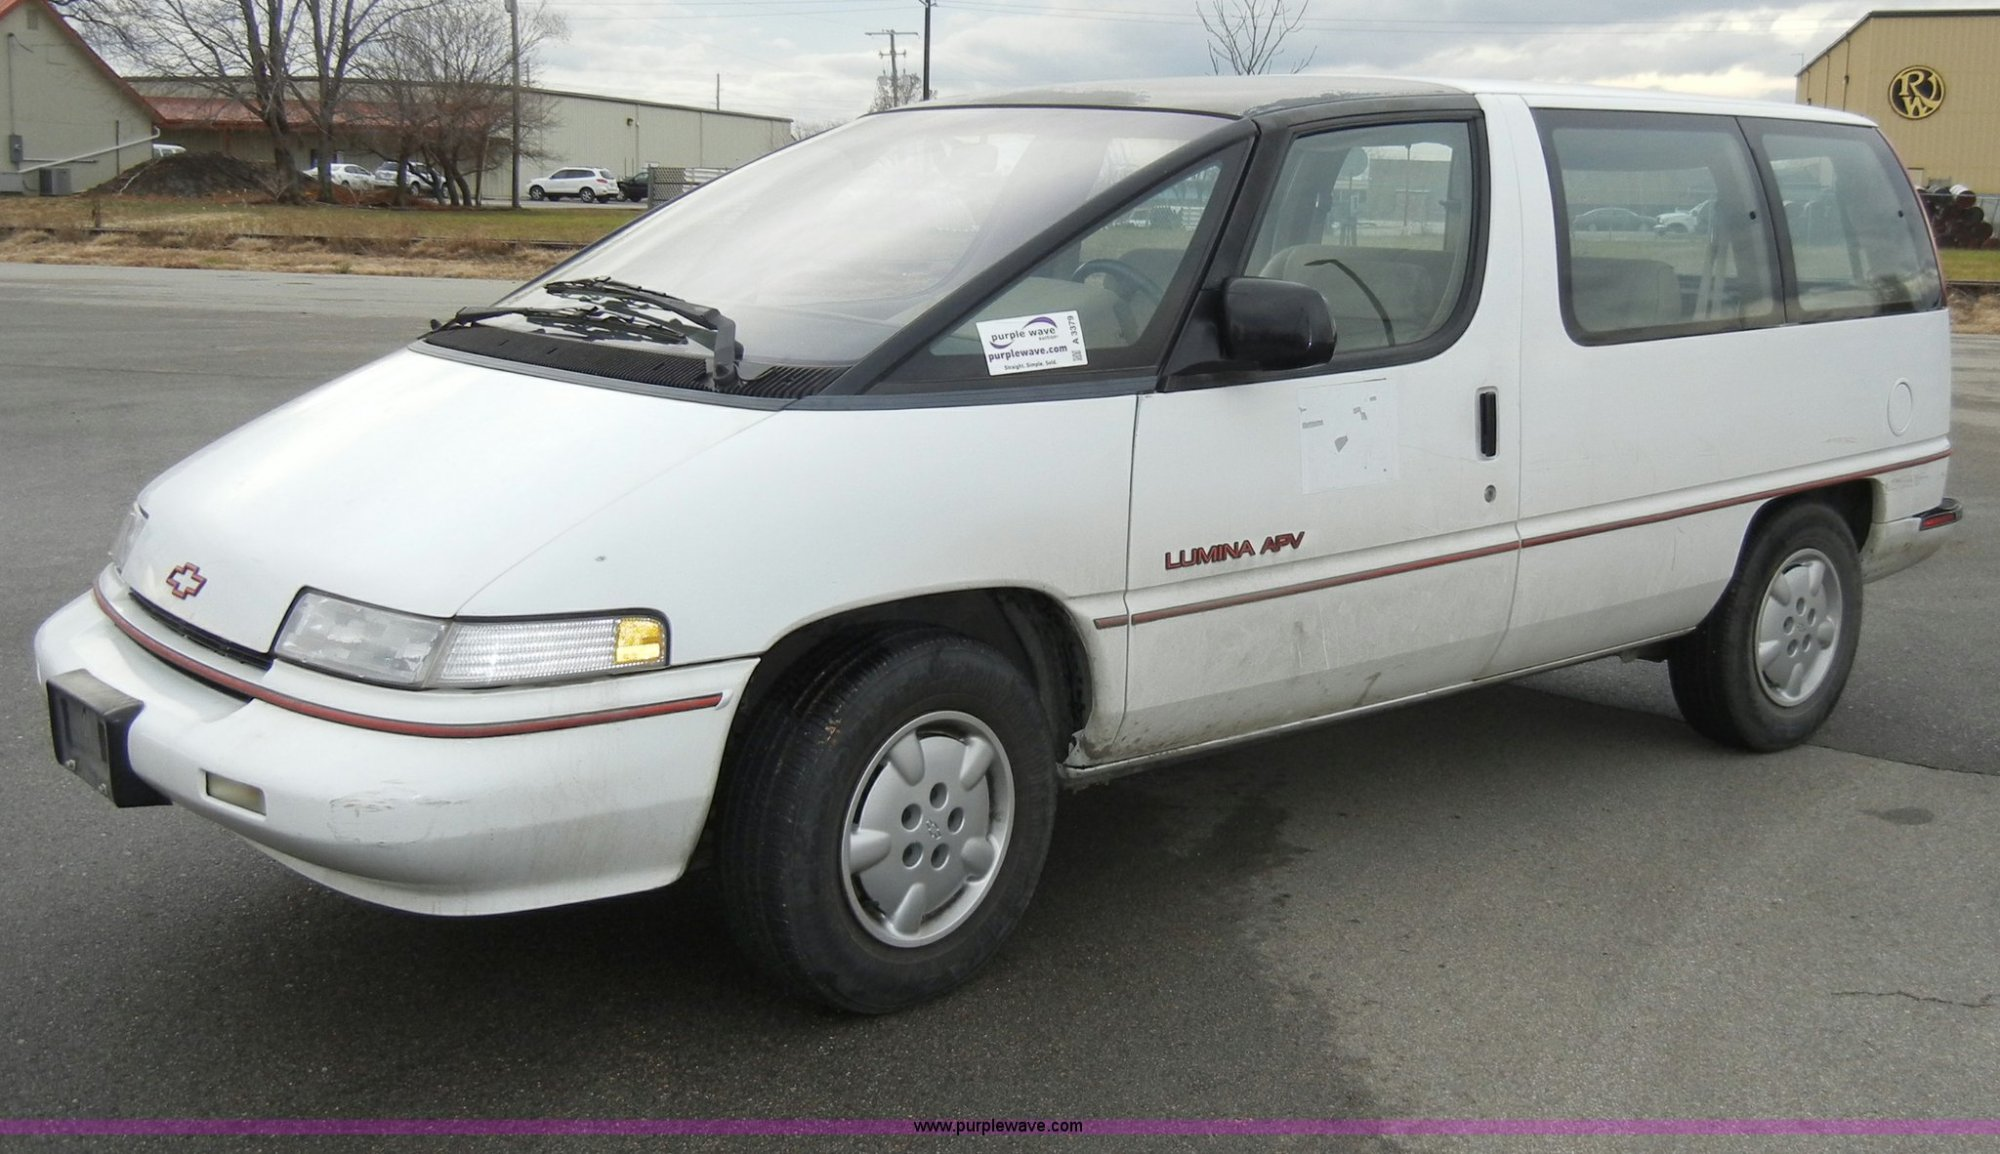 hight resolution of a3379 image for item a3379 1992 chevrolet lumina apv